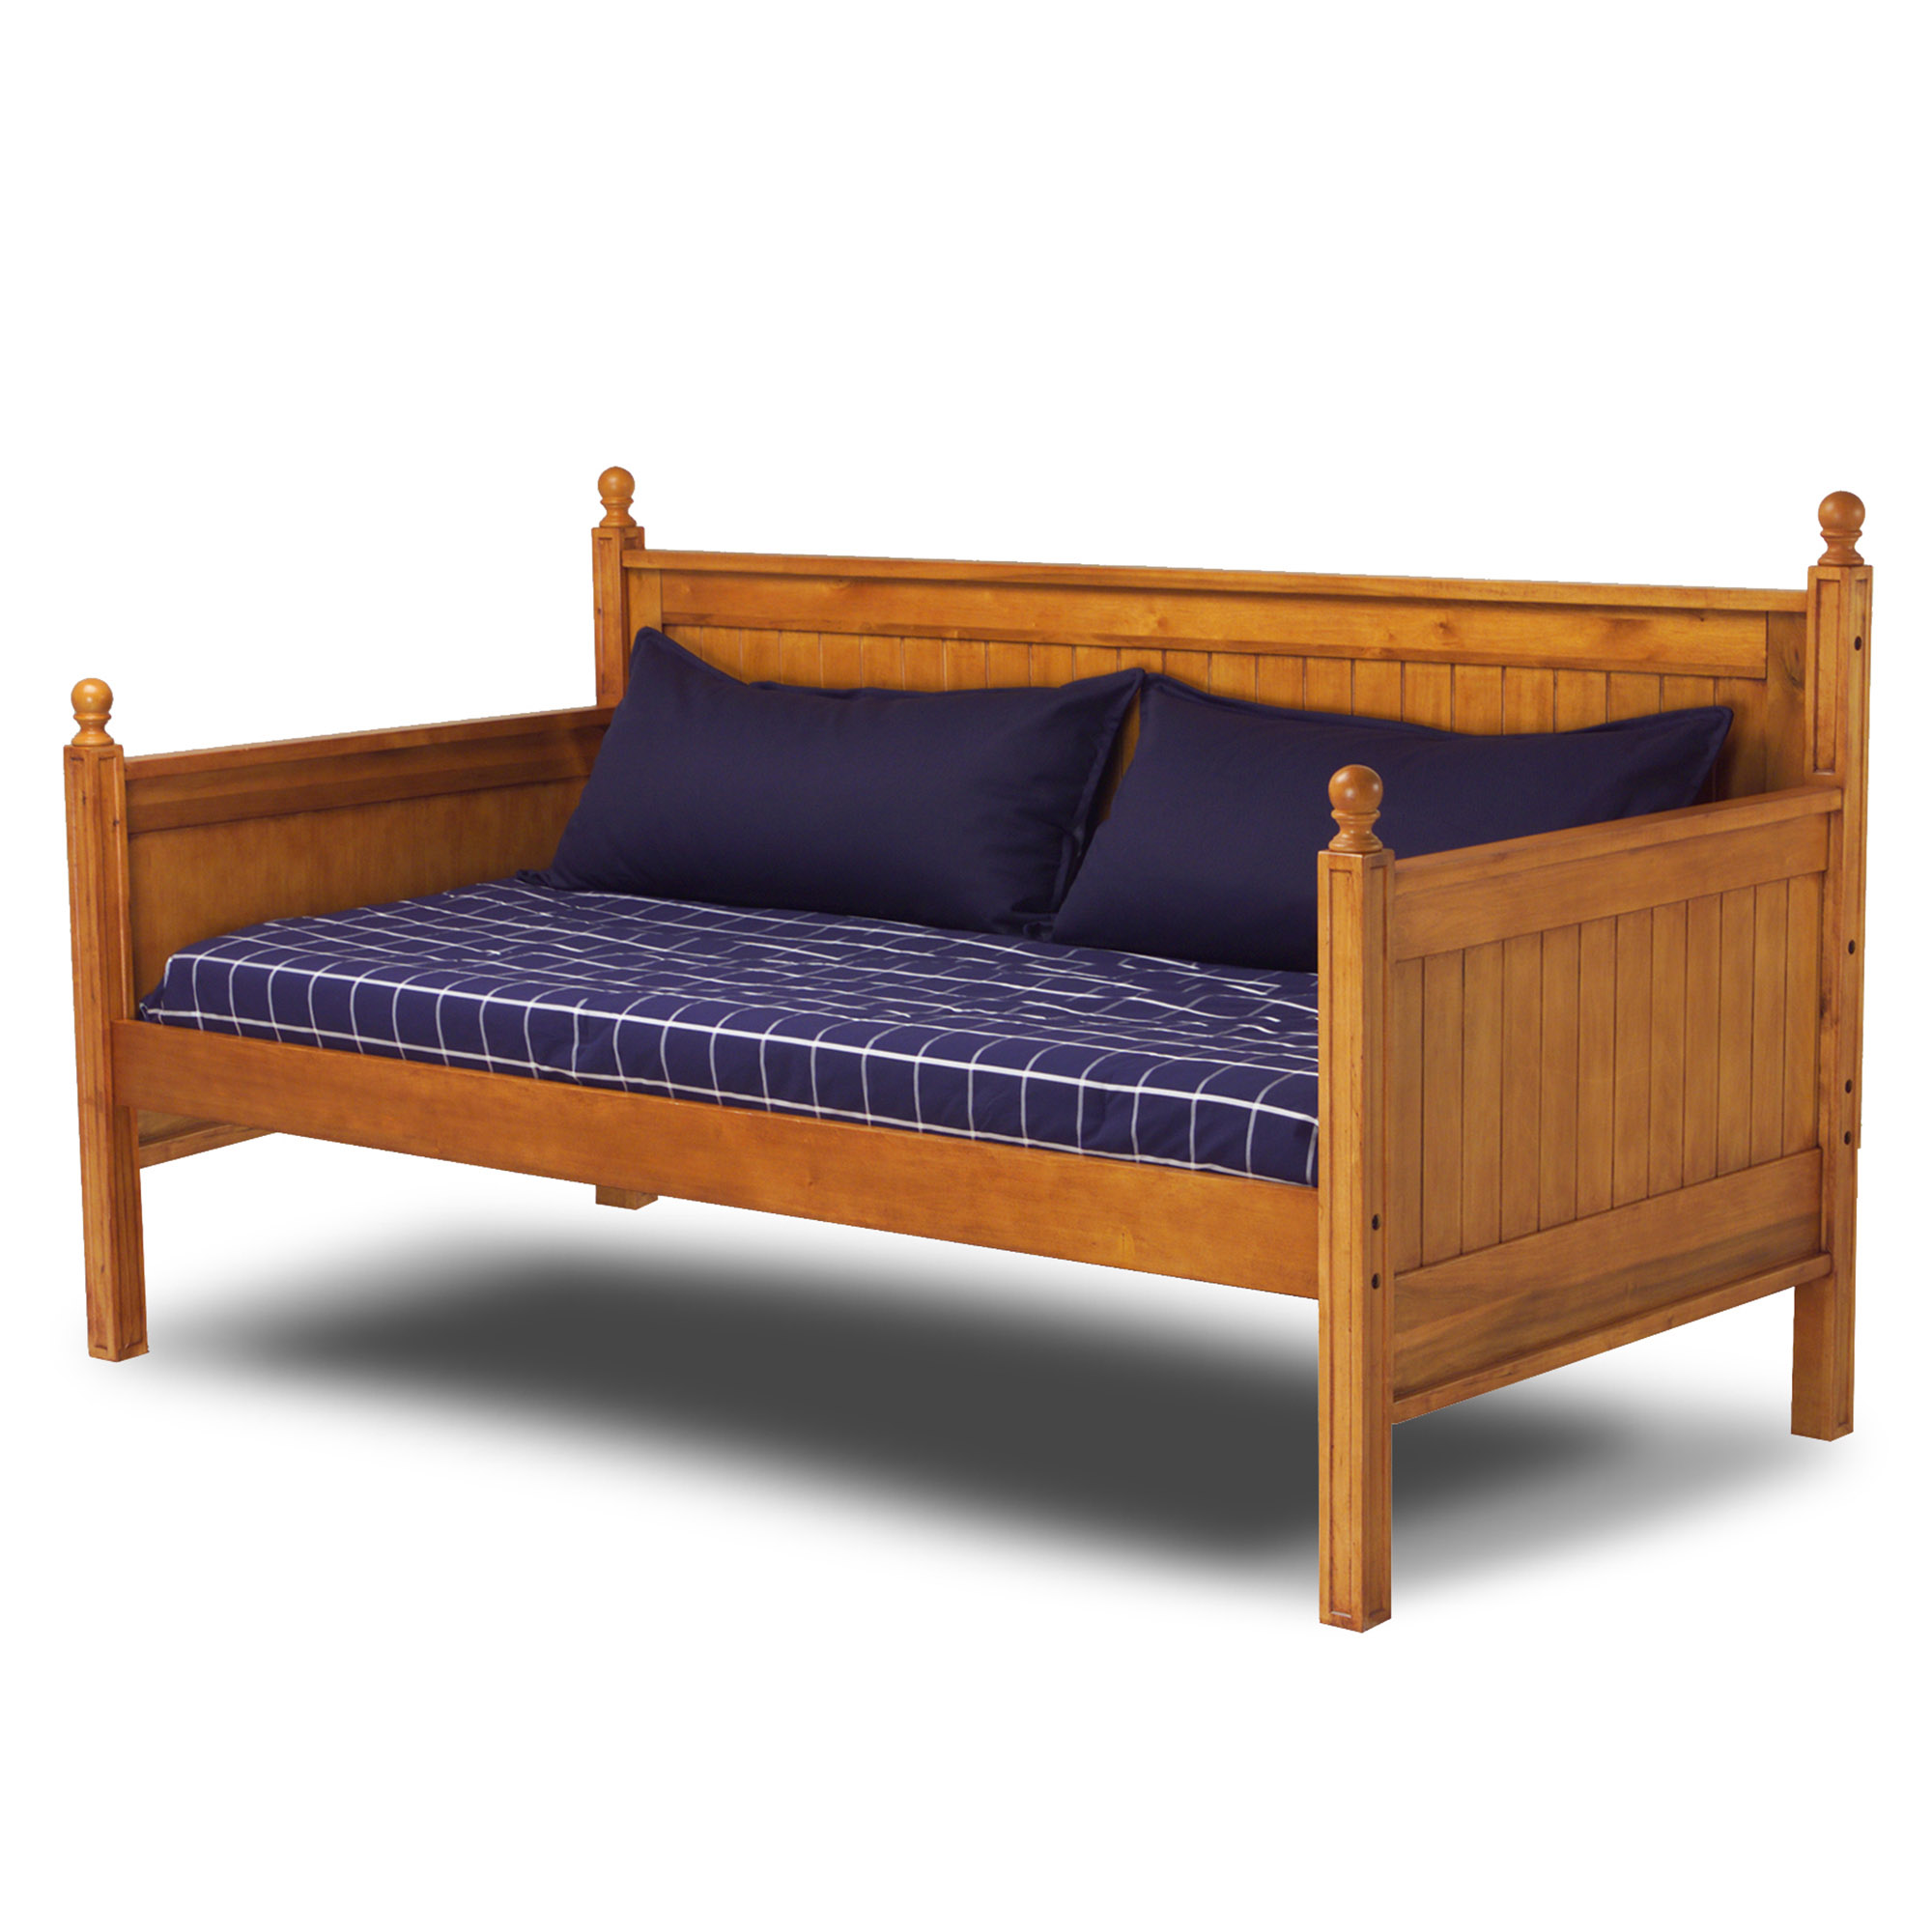 Fashion Bed Group Casey II Wood Twin Daybed, Honey Maple